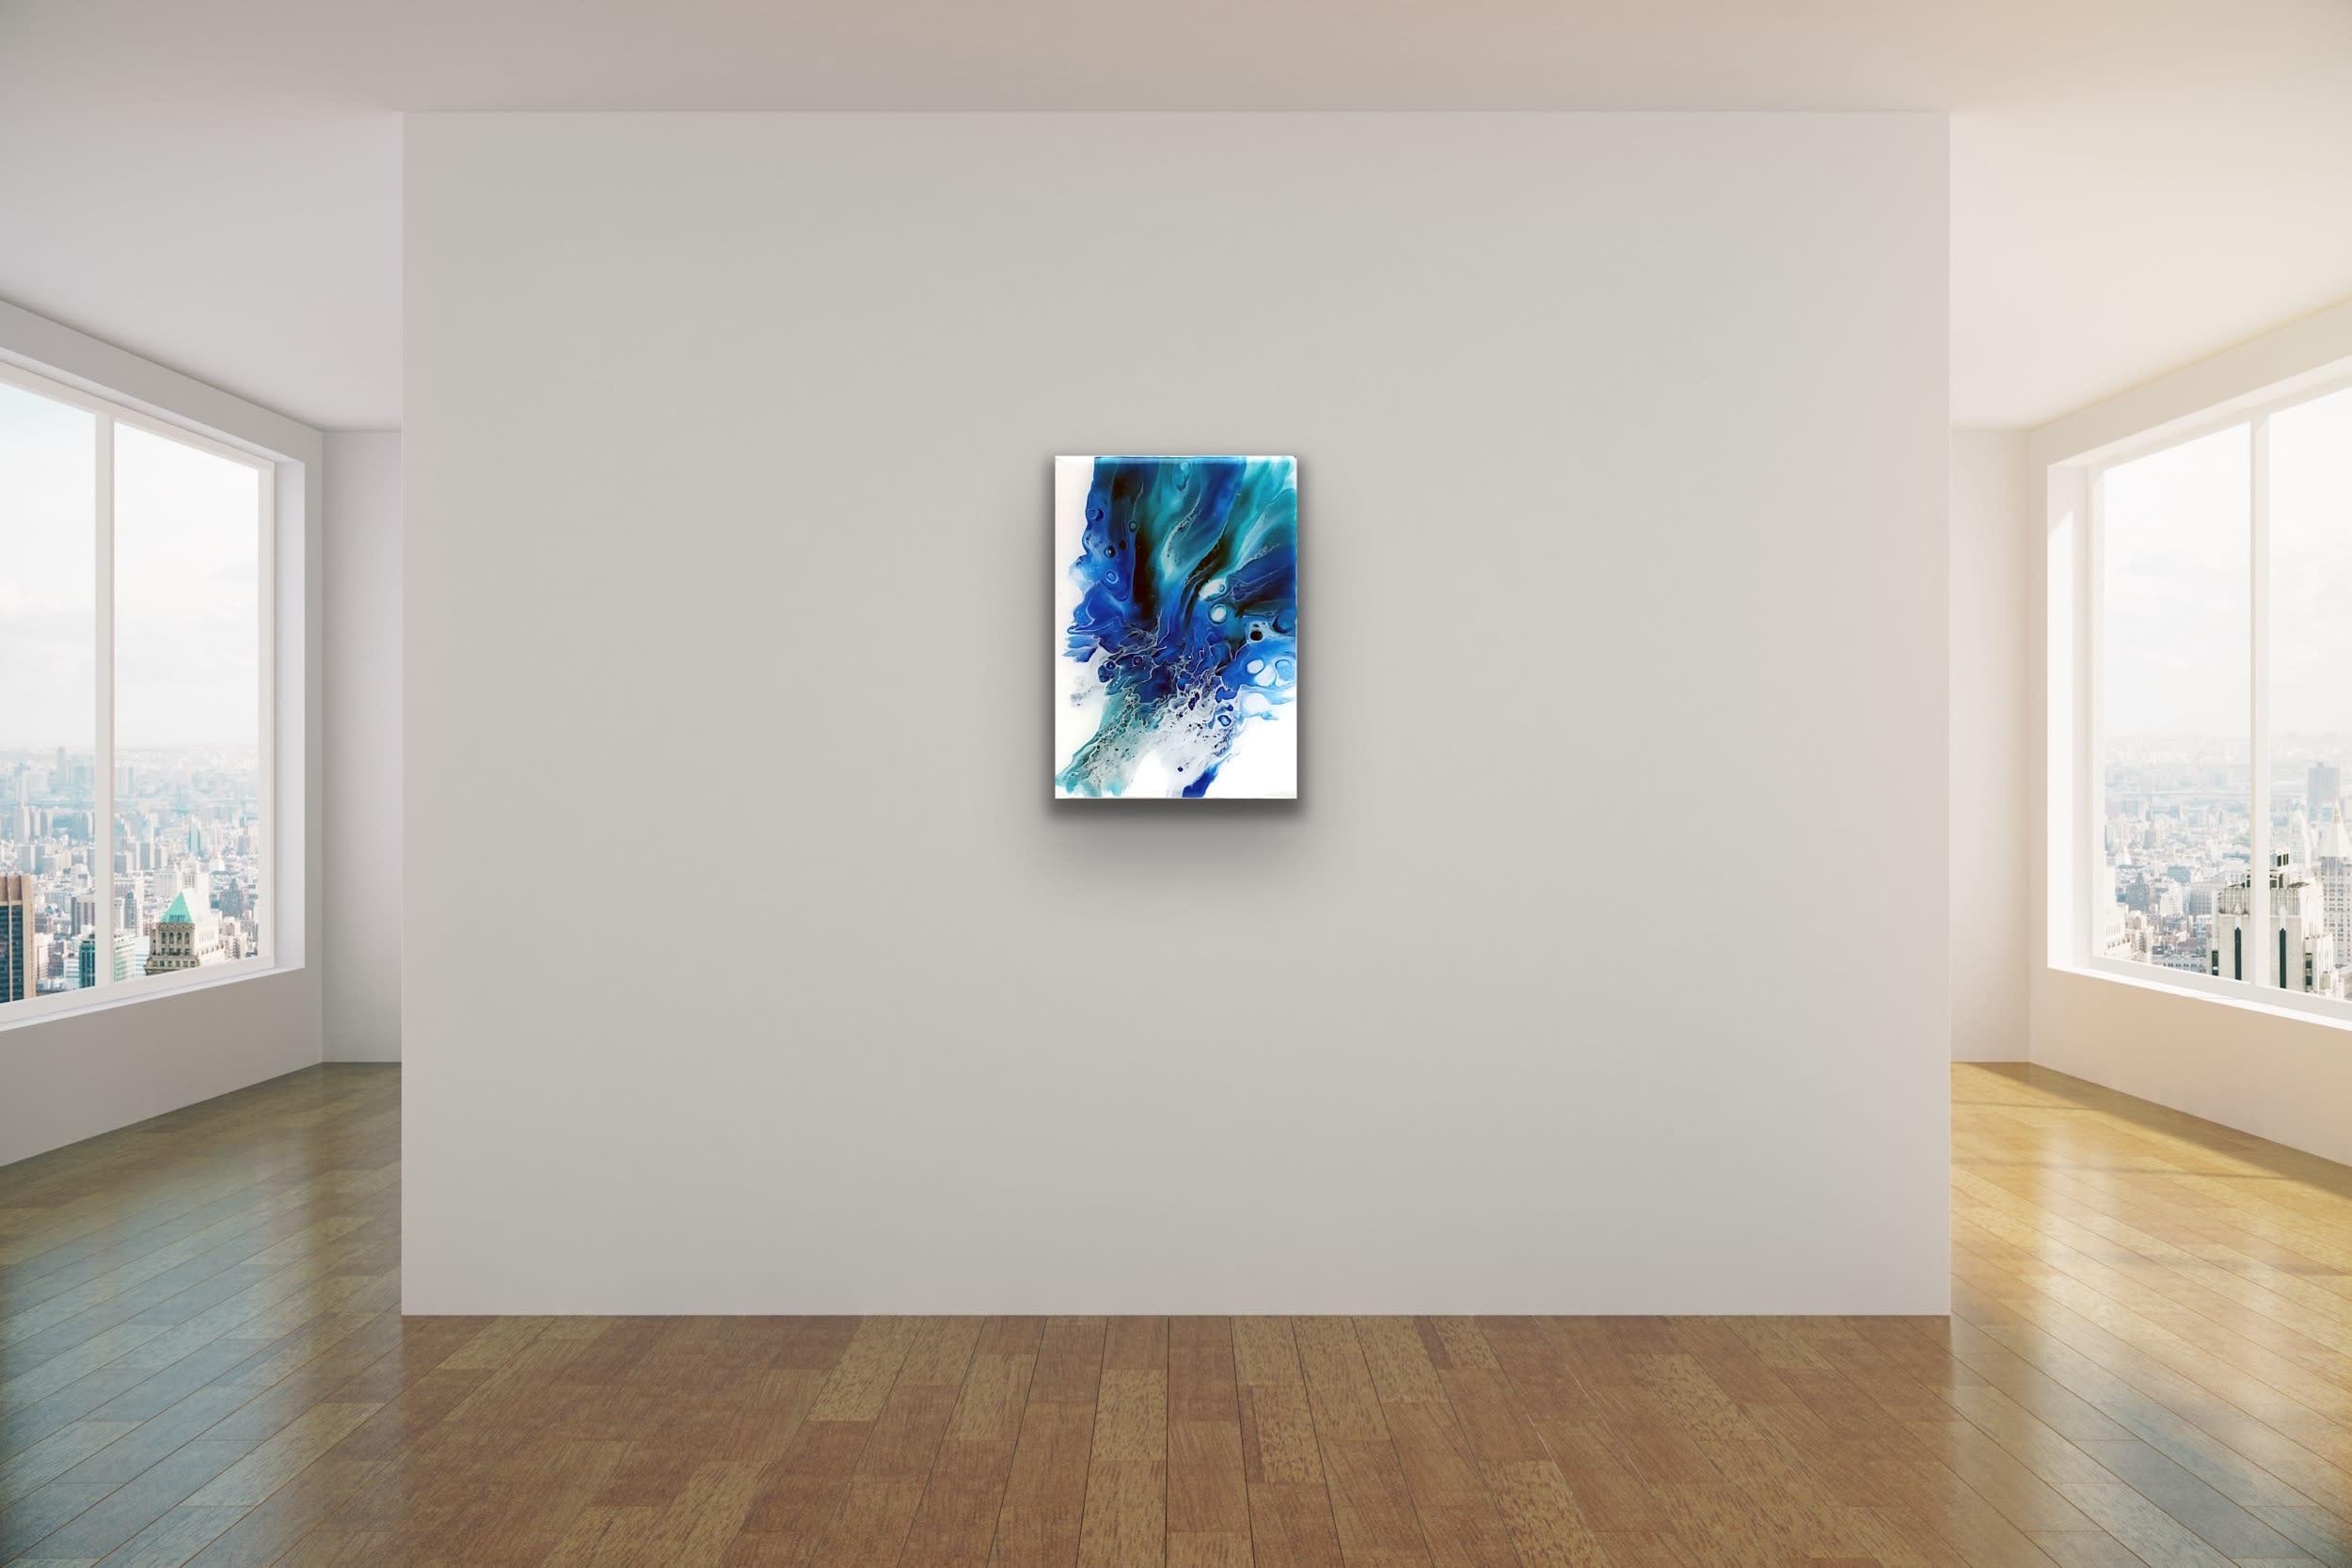 <div class='title'>           Melanie Burns Mock Ups Evo Art Maui Lahaina Front Street Hawaii Blue Ocean Abstract Sea Tropical Ocean Collage Water Resin Epoxy Pour Acrylic Shiny Glossy 12         </div>